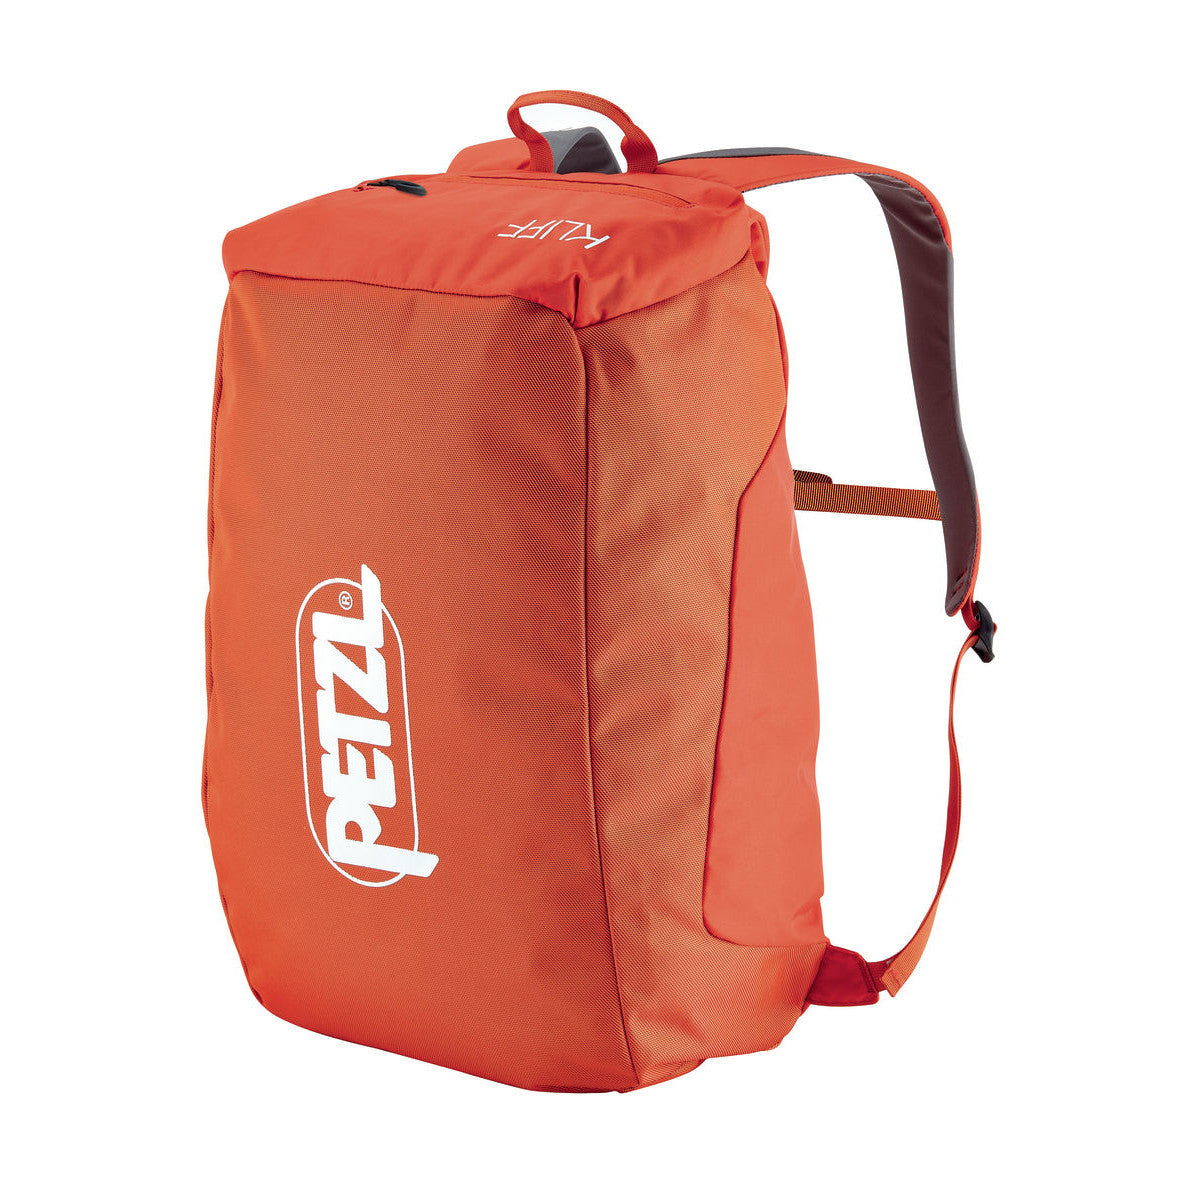 Petzl Kliff Rope Bag